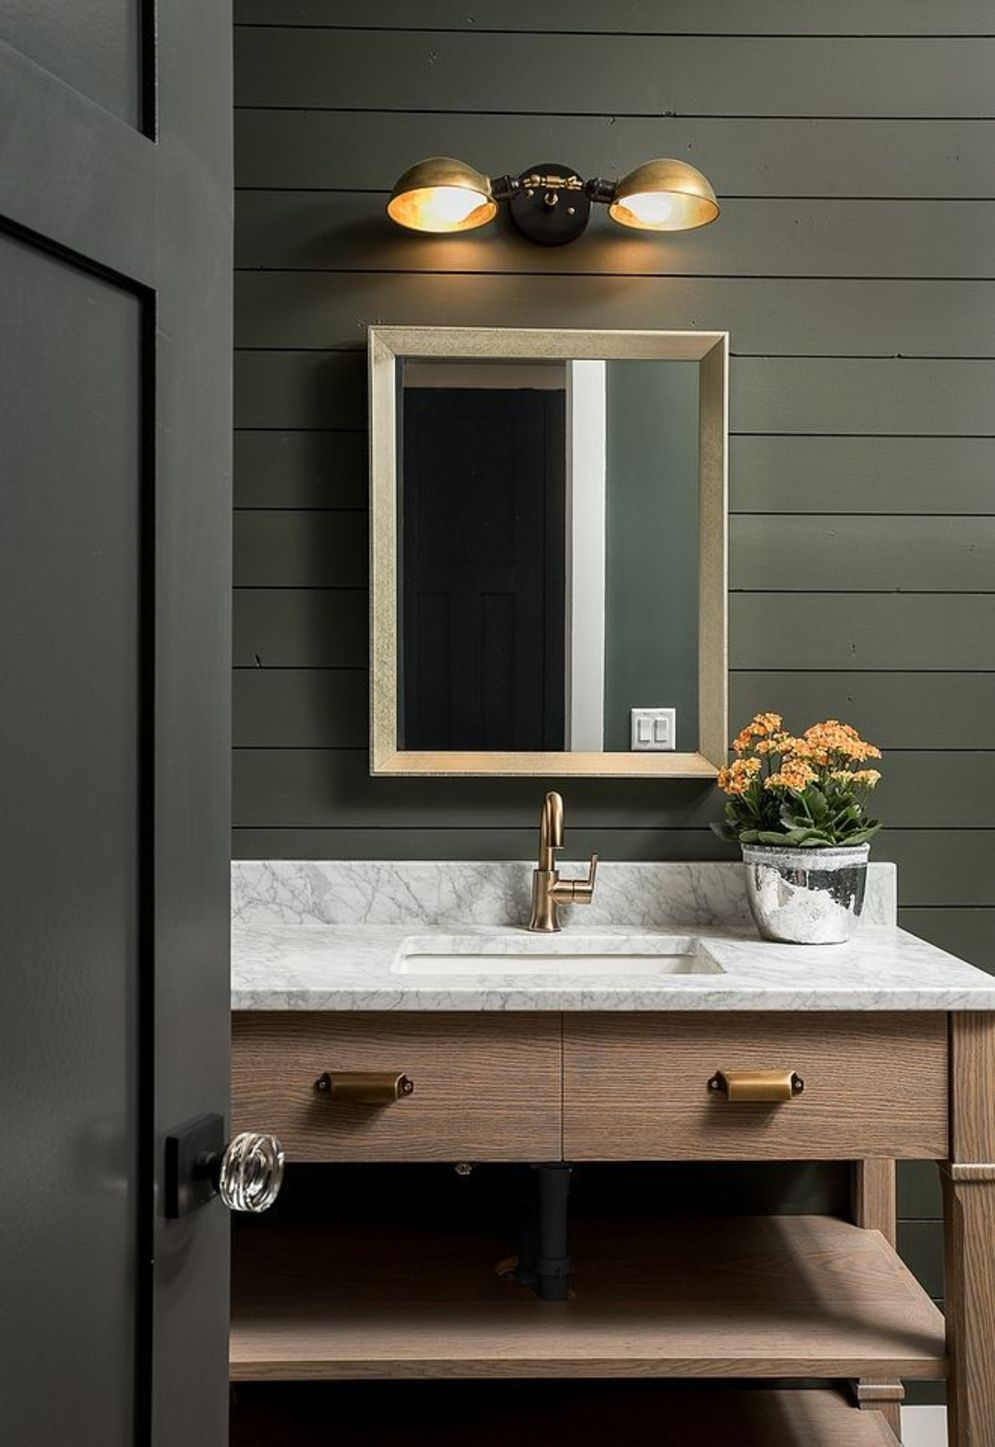 Timeless bathroom designs with wood accents enhancing more natural vibes Image 38